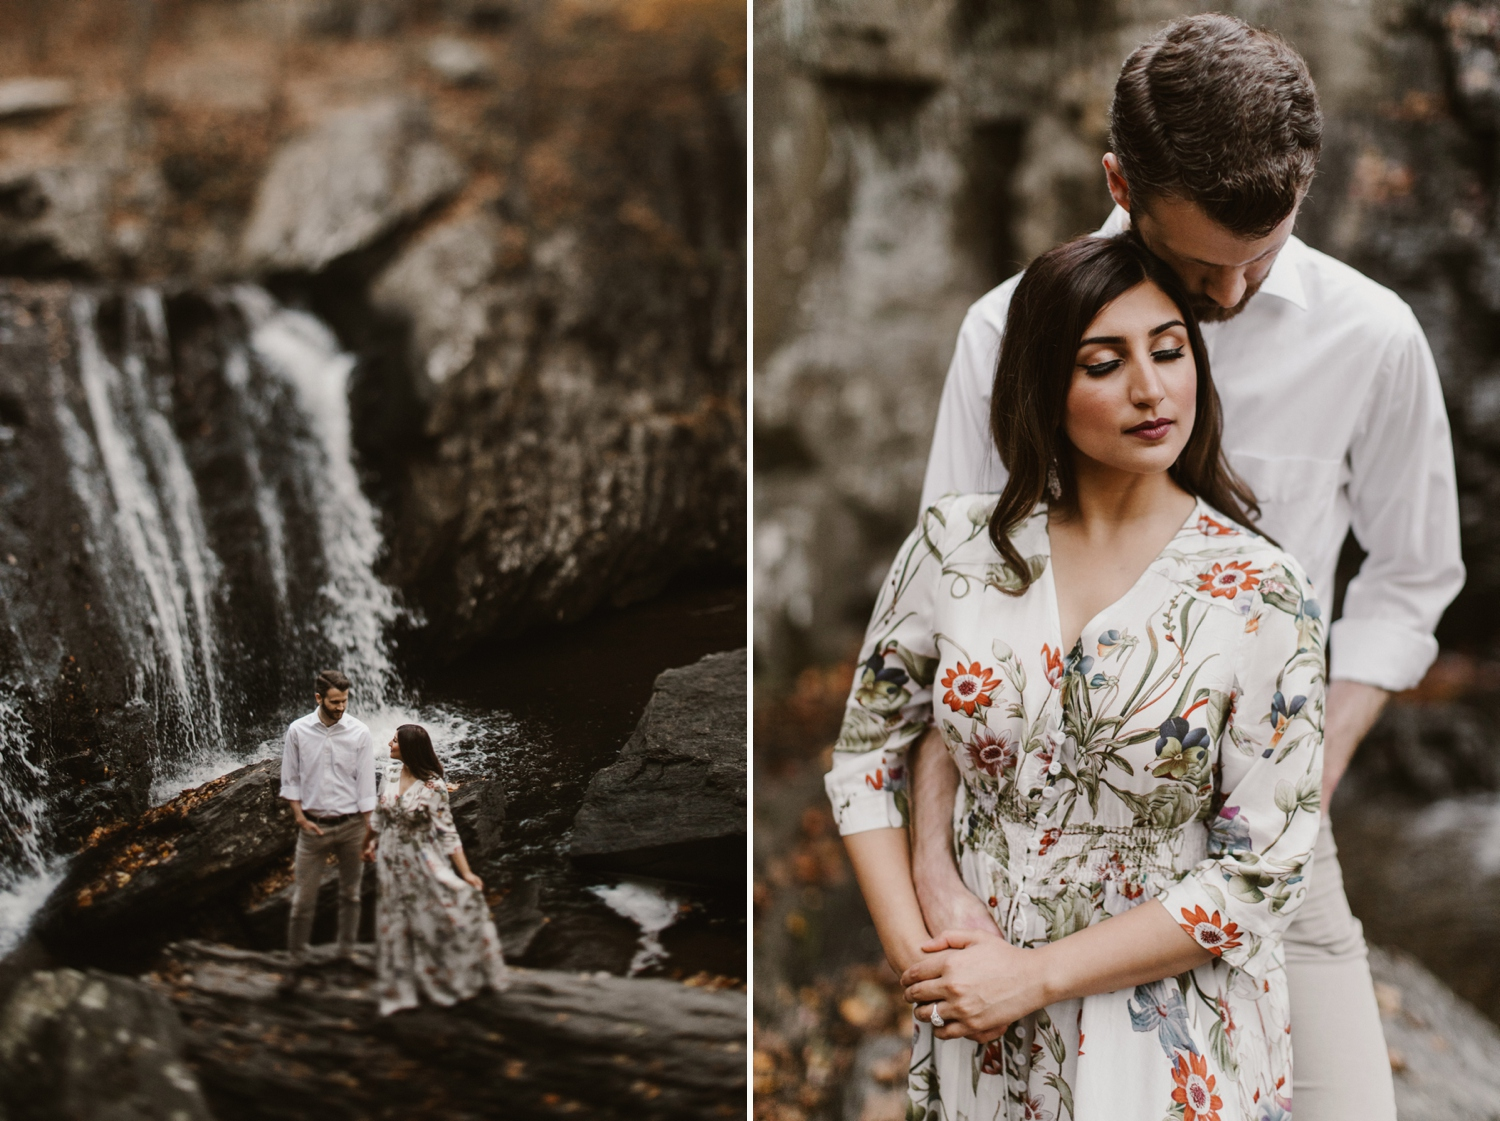 sundas-and-scotts-engagement-89_baltimore-washington-d-c-waterfall-kilgore-engagement-session-maxi-dress-earthy-maryland-wedding-photographer-kate-ann-photography-phot